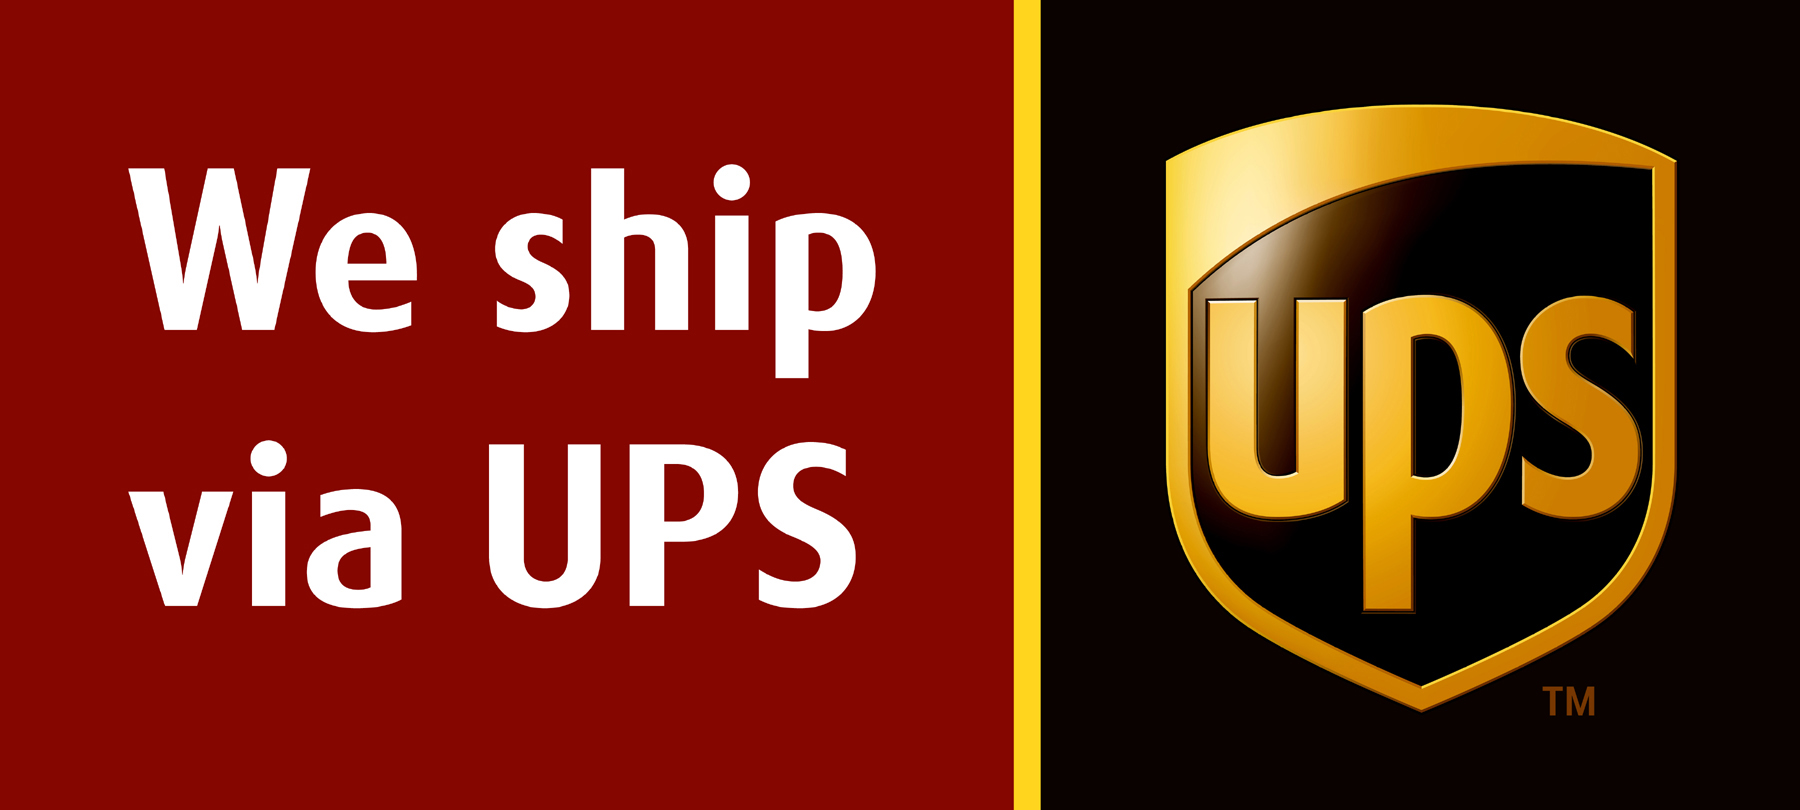 Robinsons Hardware and Rental is an Authorized UPS Shipping Center